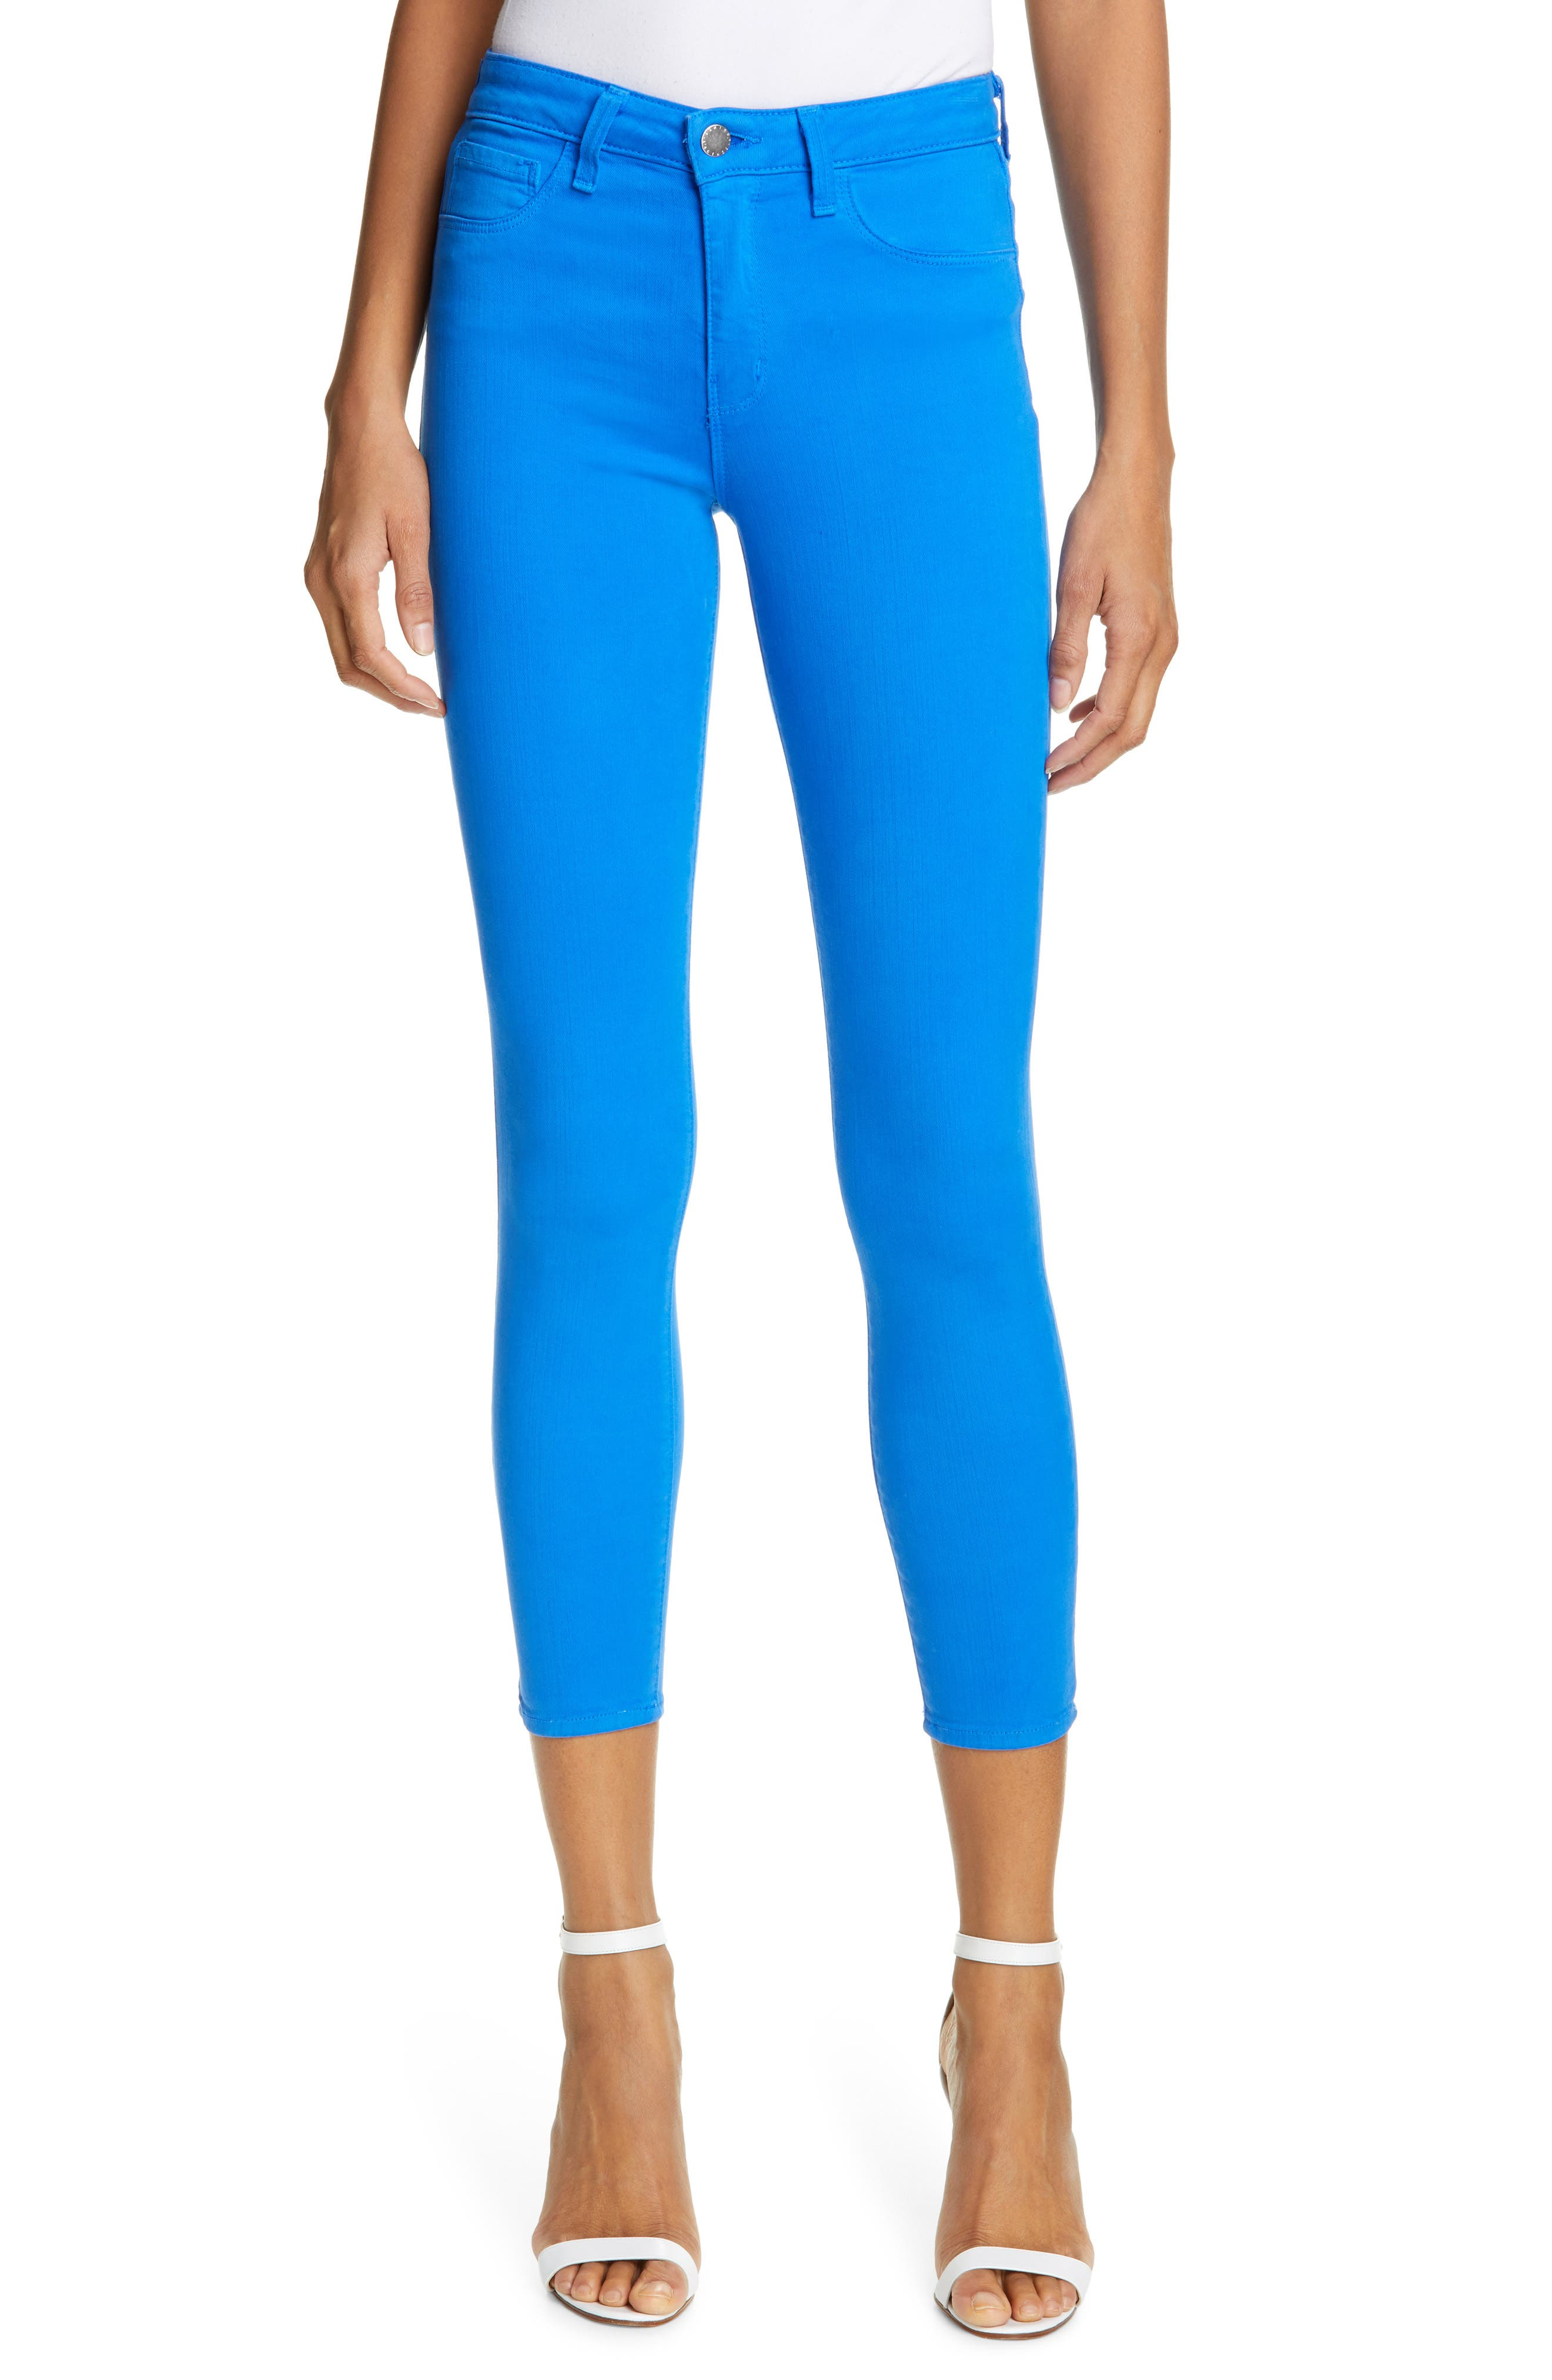 L'AGENCE High Waist Skinny Ankle Jeans, Main, color, RIVIERA BLUE